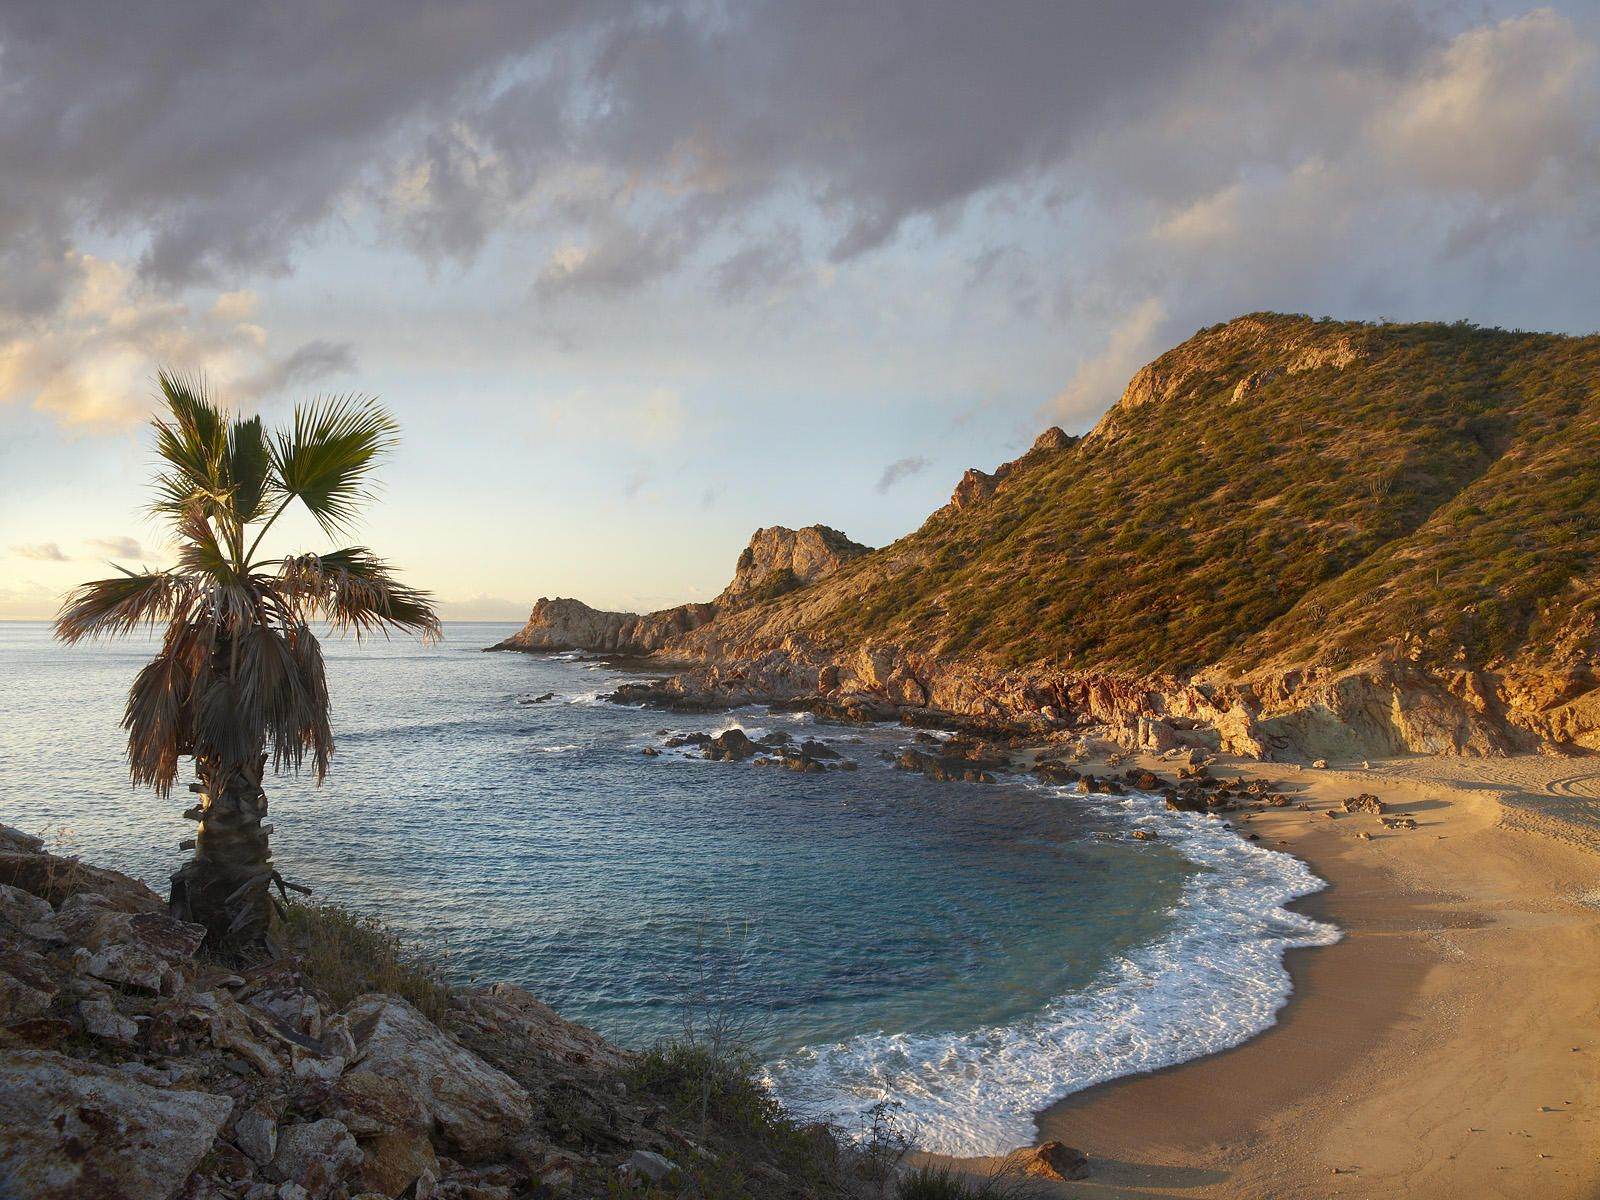 Baja California Mexico BUCKETLIST PLACES TO GO THINGS TO SEE 1600x1200